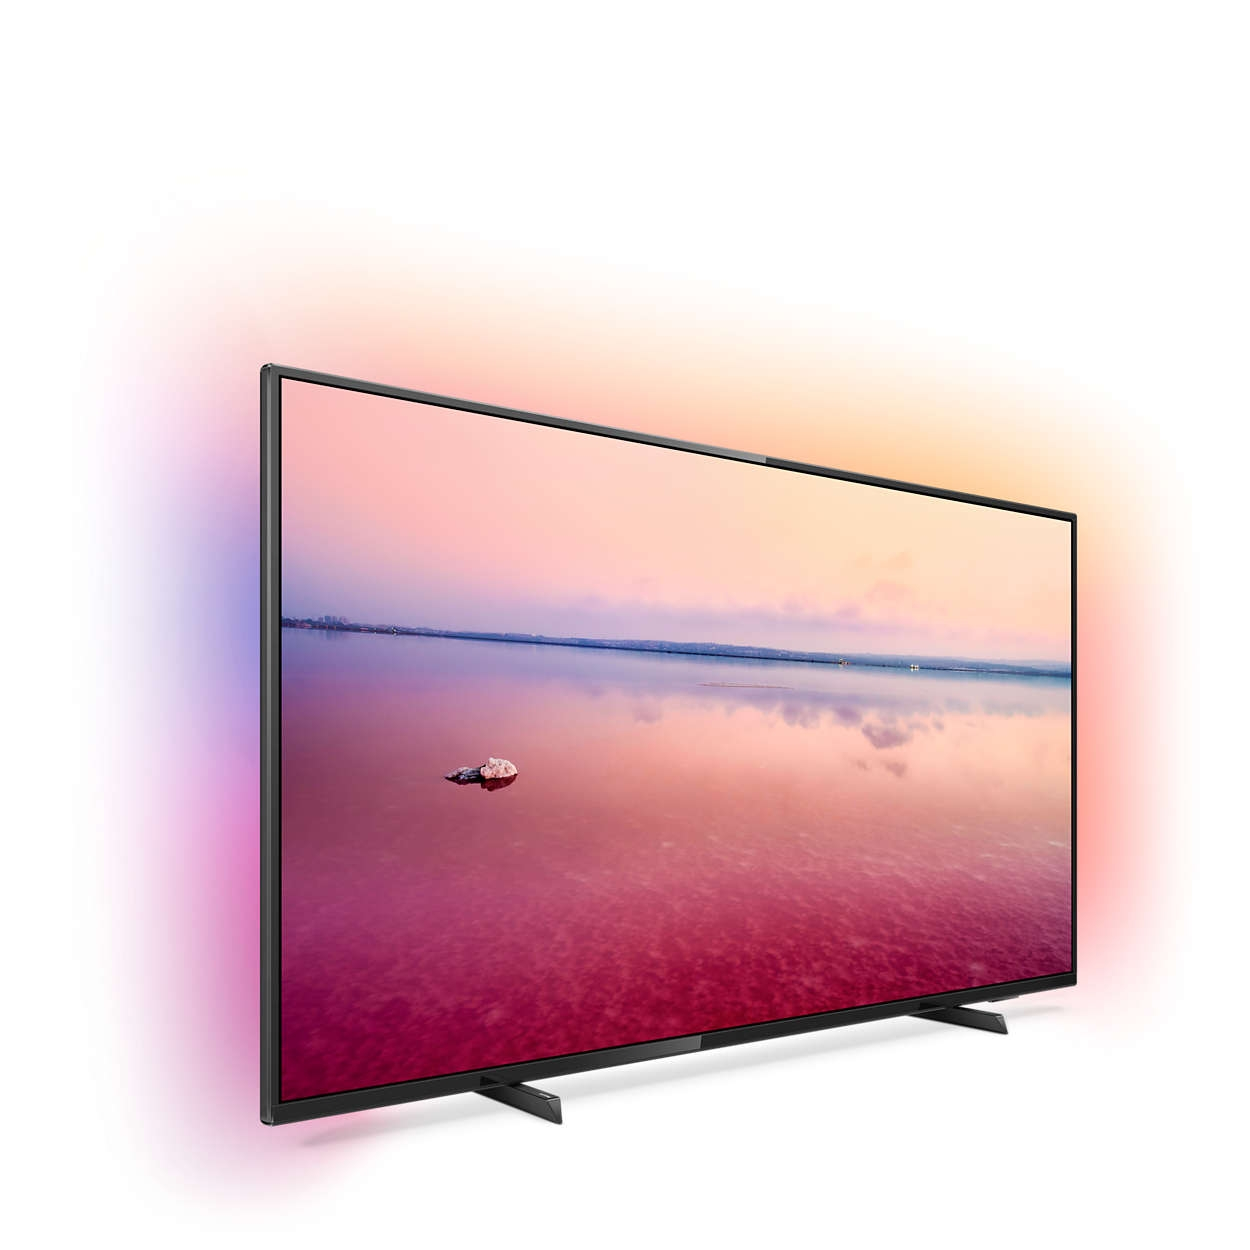 Фото - ЖК Телевизор Ultra HD Philips 50PUS6704 50 дюймов телевизор philips 43pus7505 60 43 ultra hd 4k